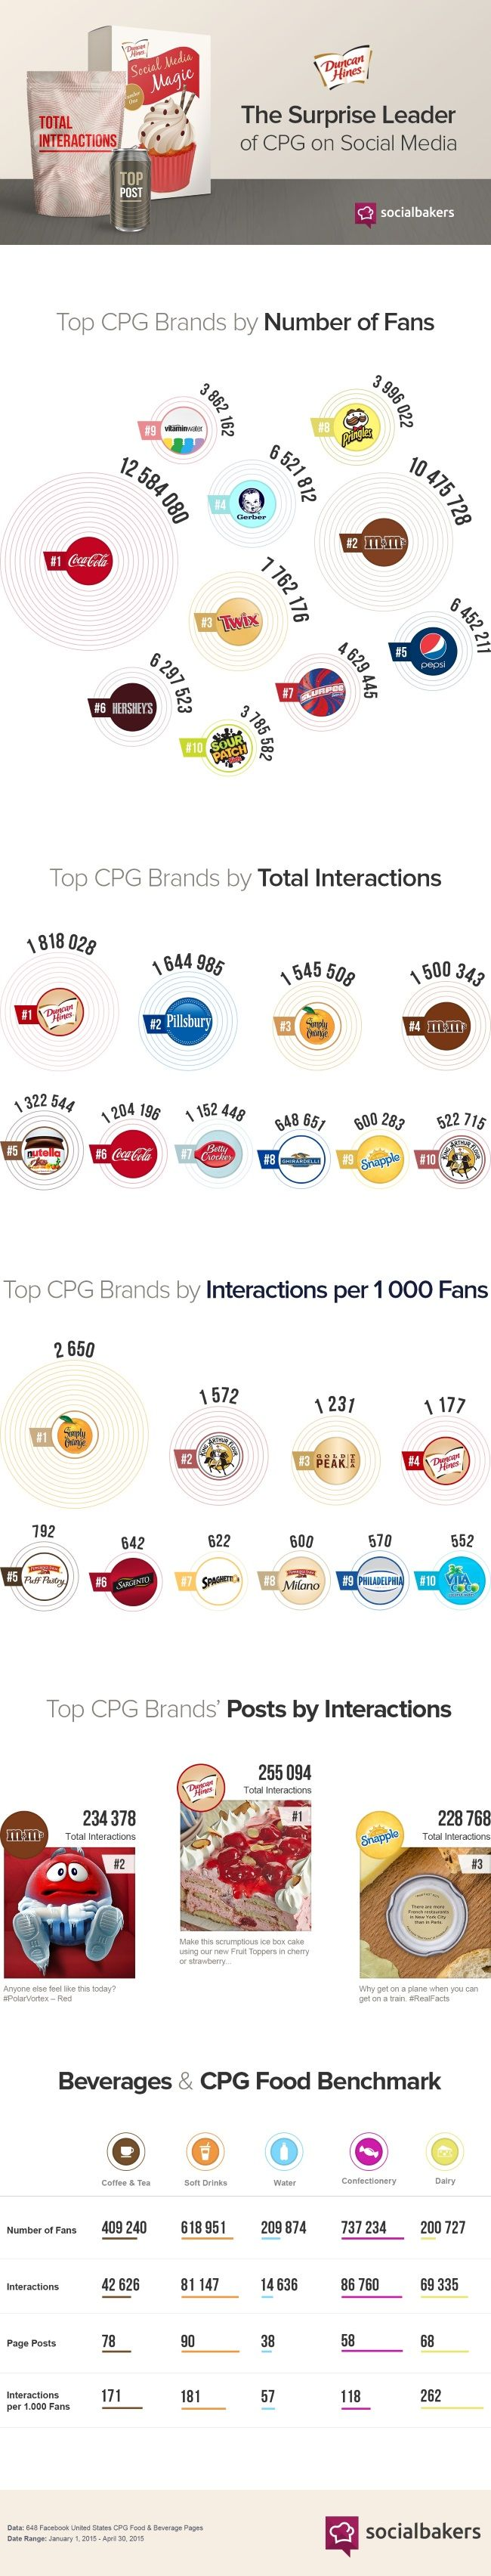 Consumer Packaged Goods on Facebook: Surprising results with lessons for all   Ad Week: Social Times